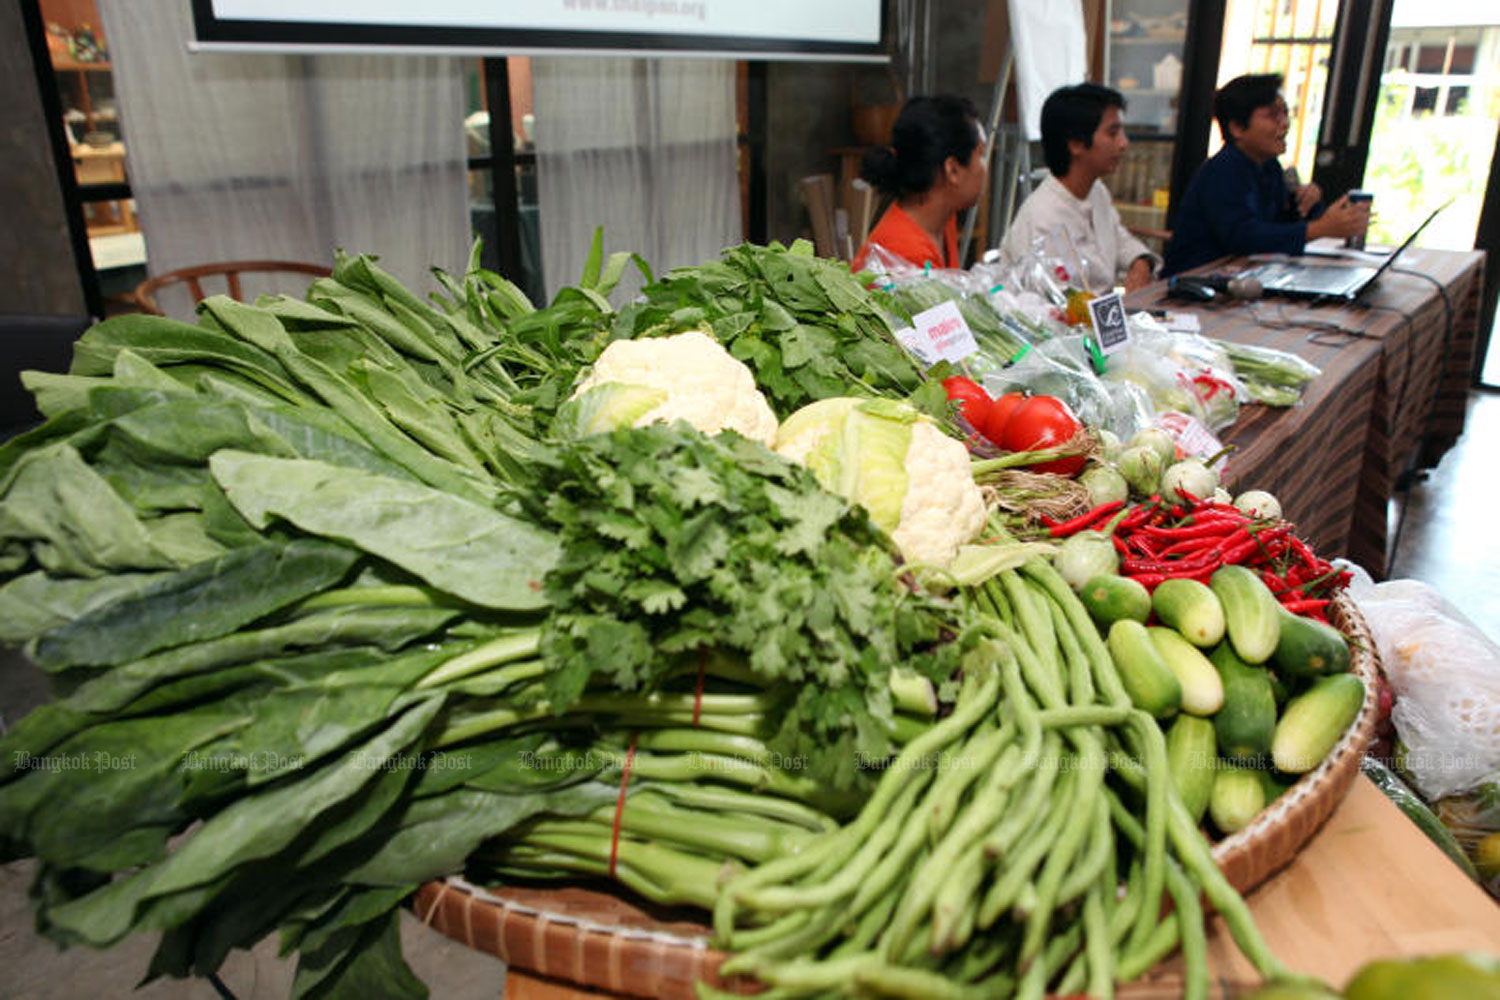 The Thai Pesticide Alert Network announces the results of its latest survey on contamination of vegetables and fruit at a news conference in in Nonthaburi province on Wednesday. (Photo by Tawatchai Kemgumnerd)